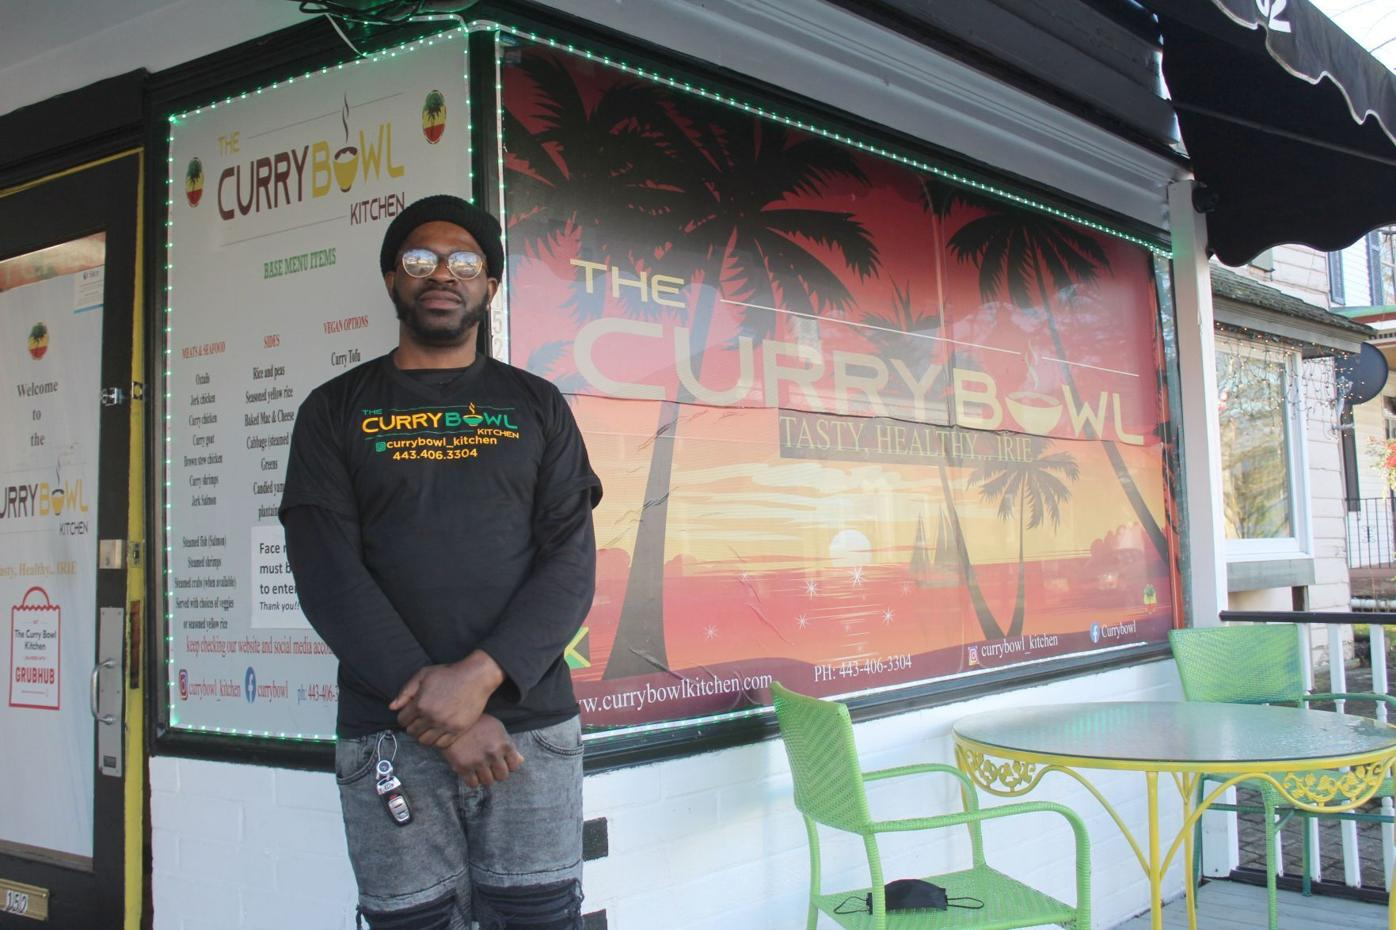 The Curry Bowl Kitchen re-opens for business